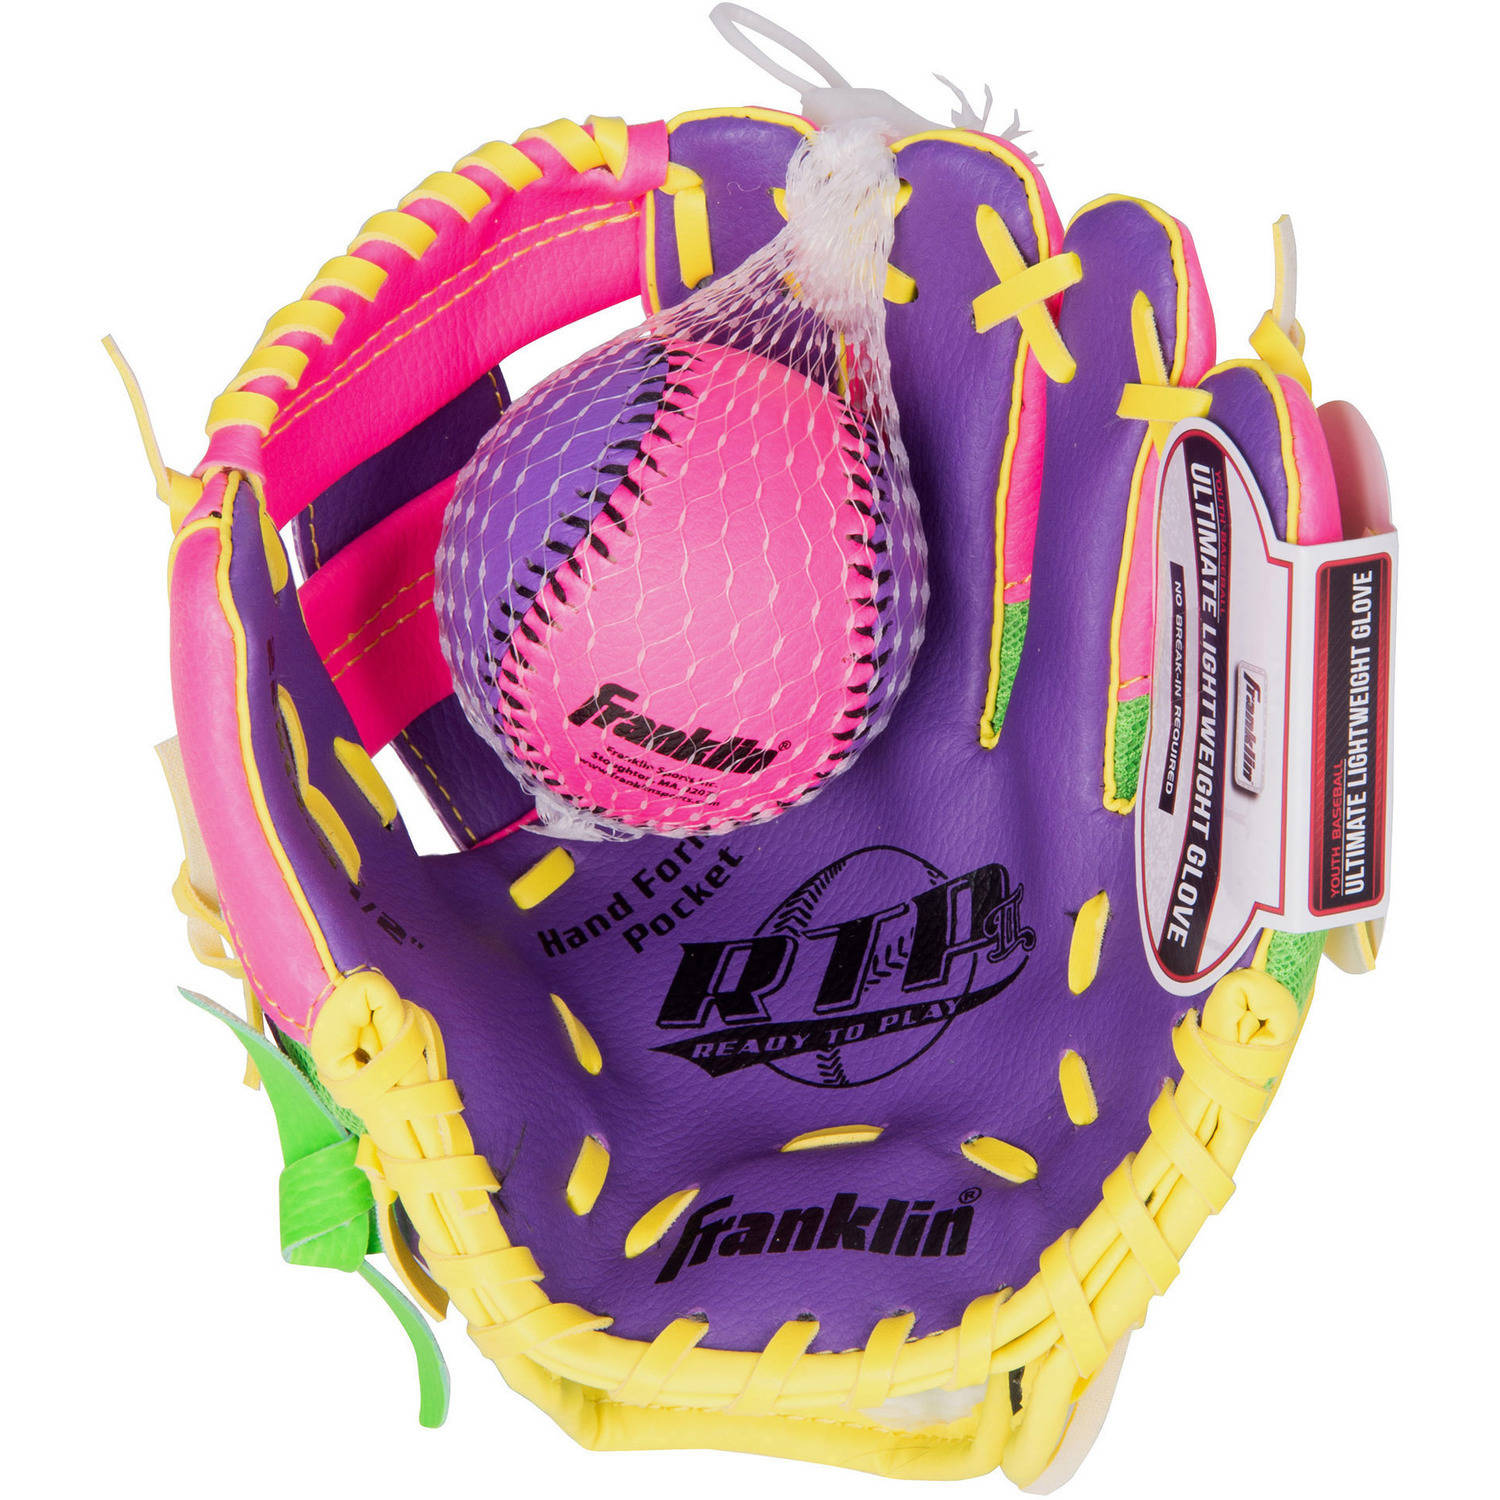 "Franklin Sports 9.5"" Tee Ball Recreational Glove with Ball, Purple/Lime/Yellow, Right-Handed Thrower"